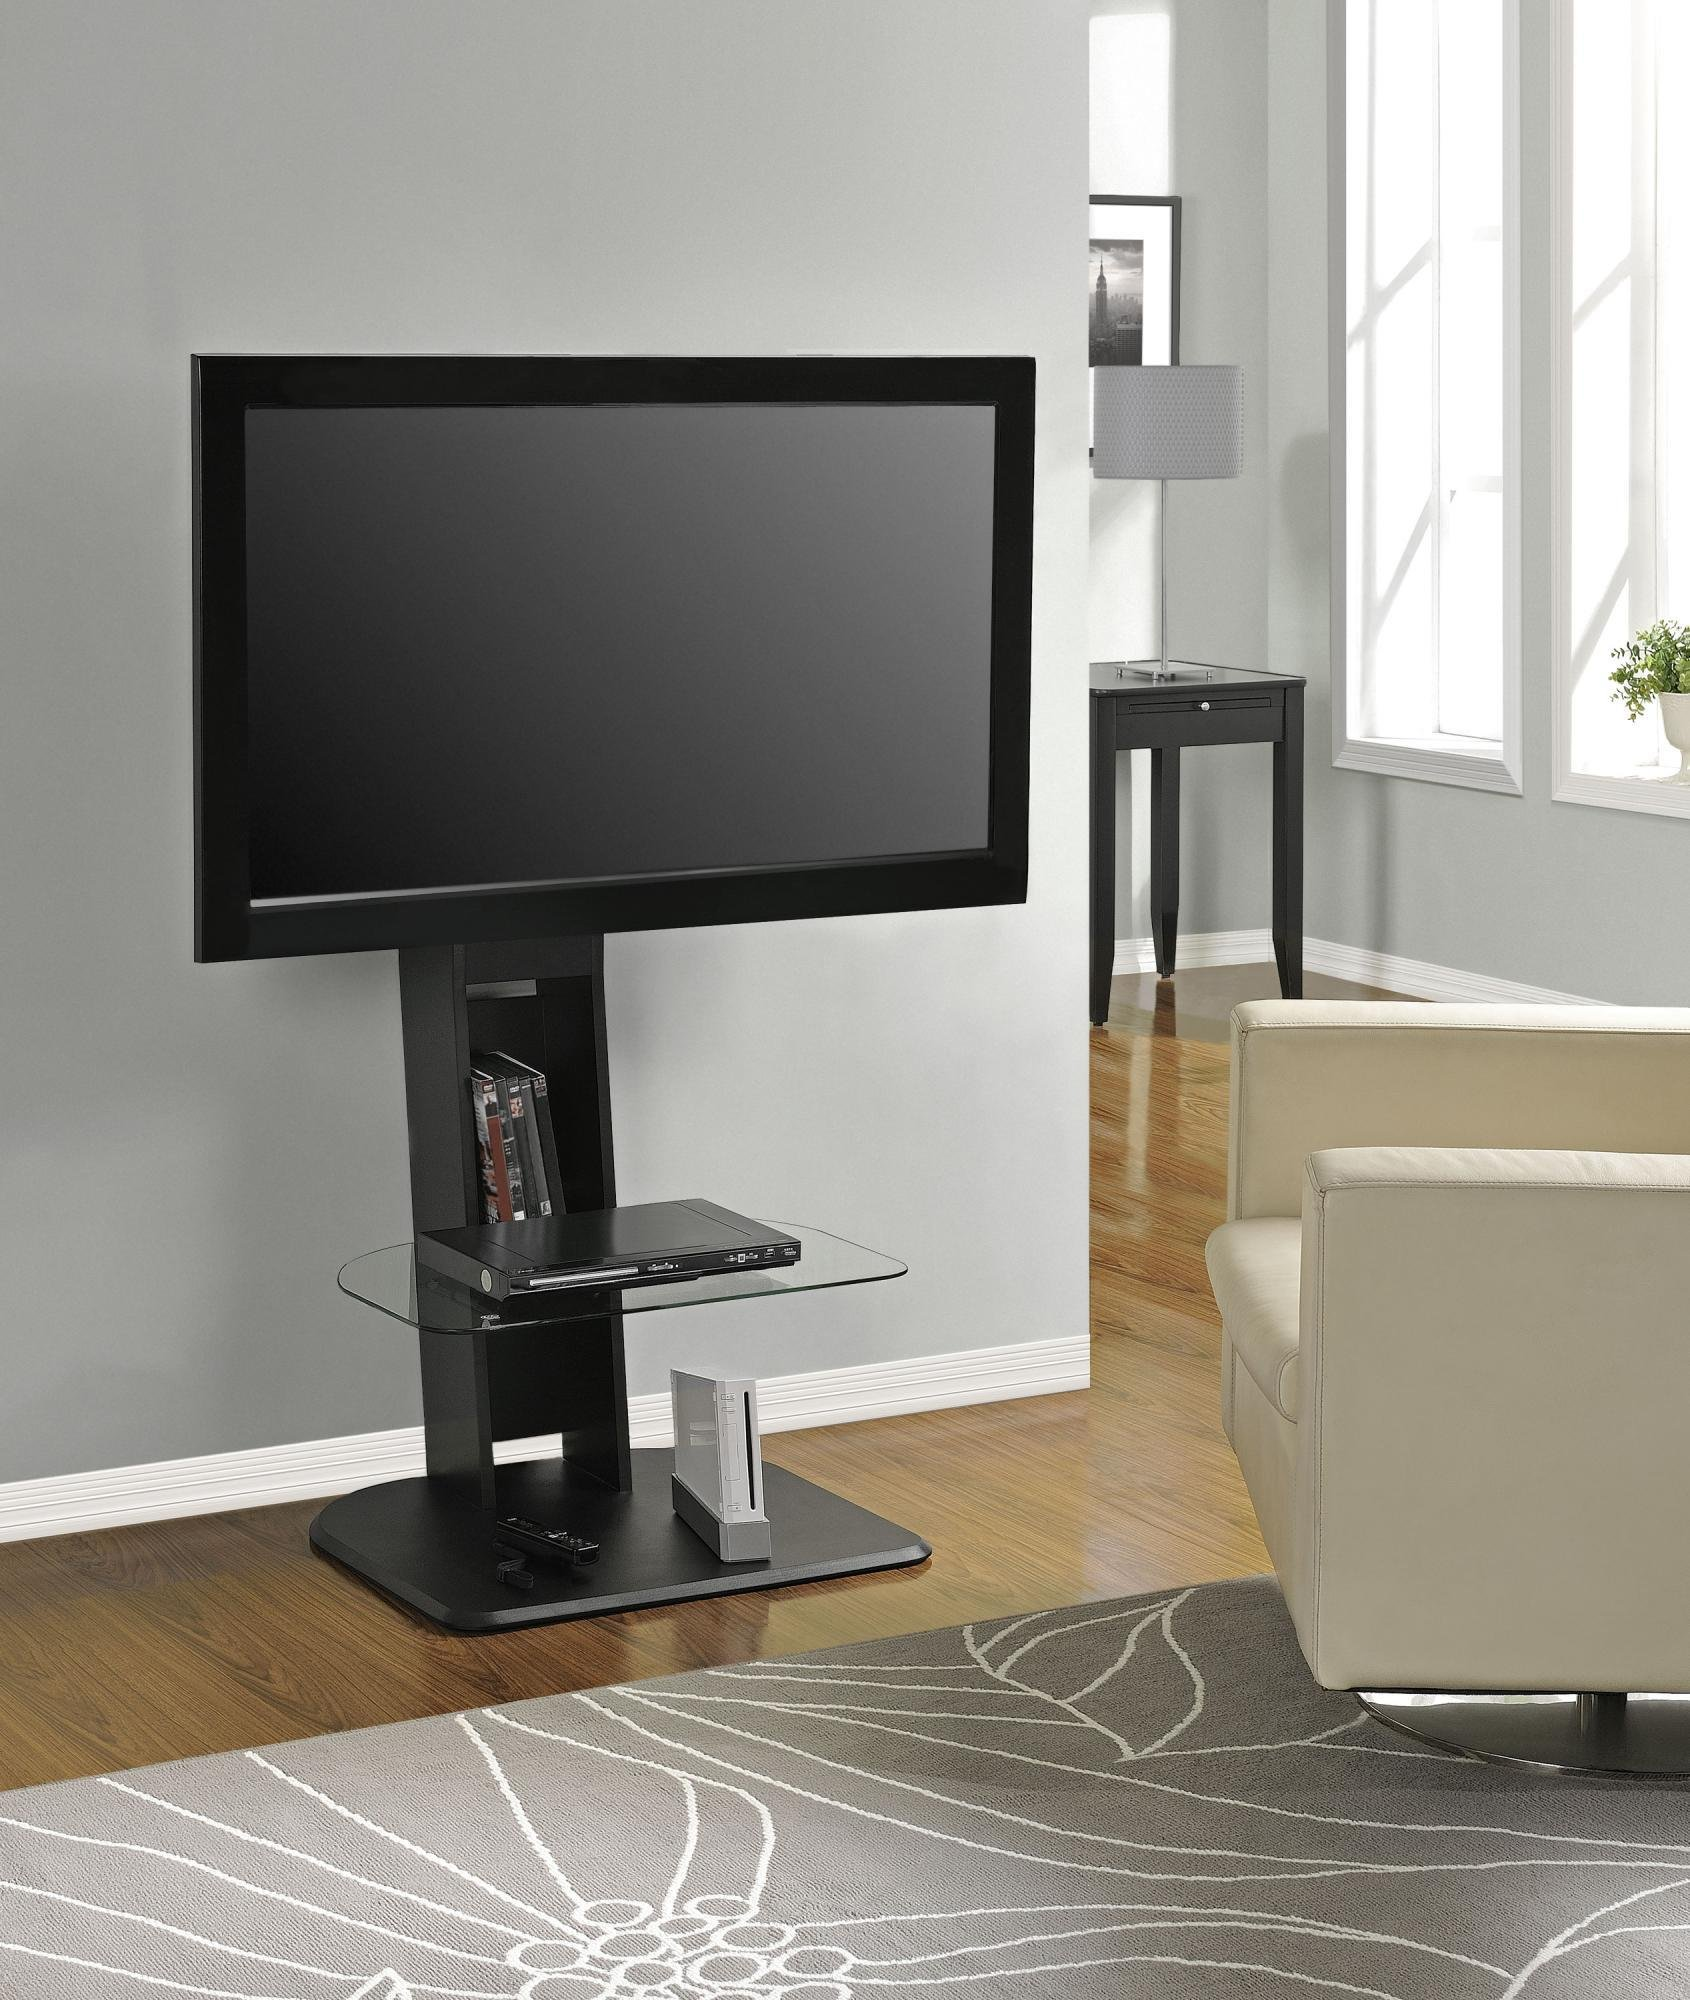 Ameriwood Home Galaxy TV Stand with Mount for TVs up to 50'', Black